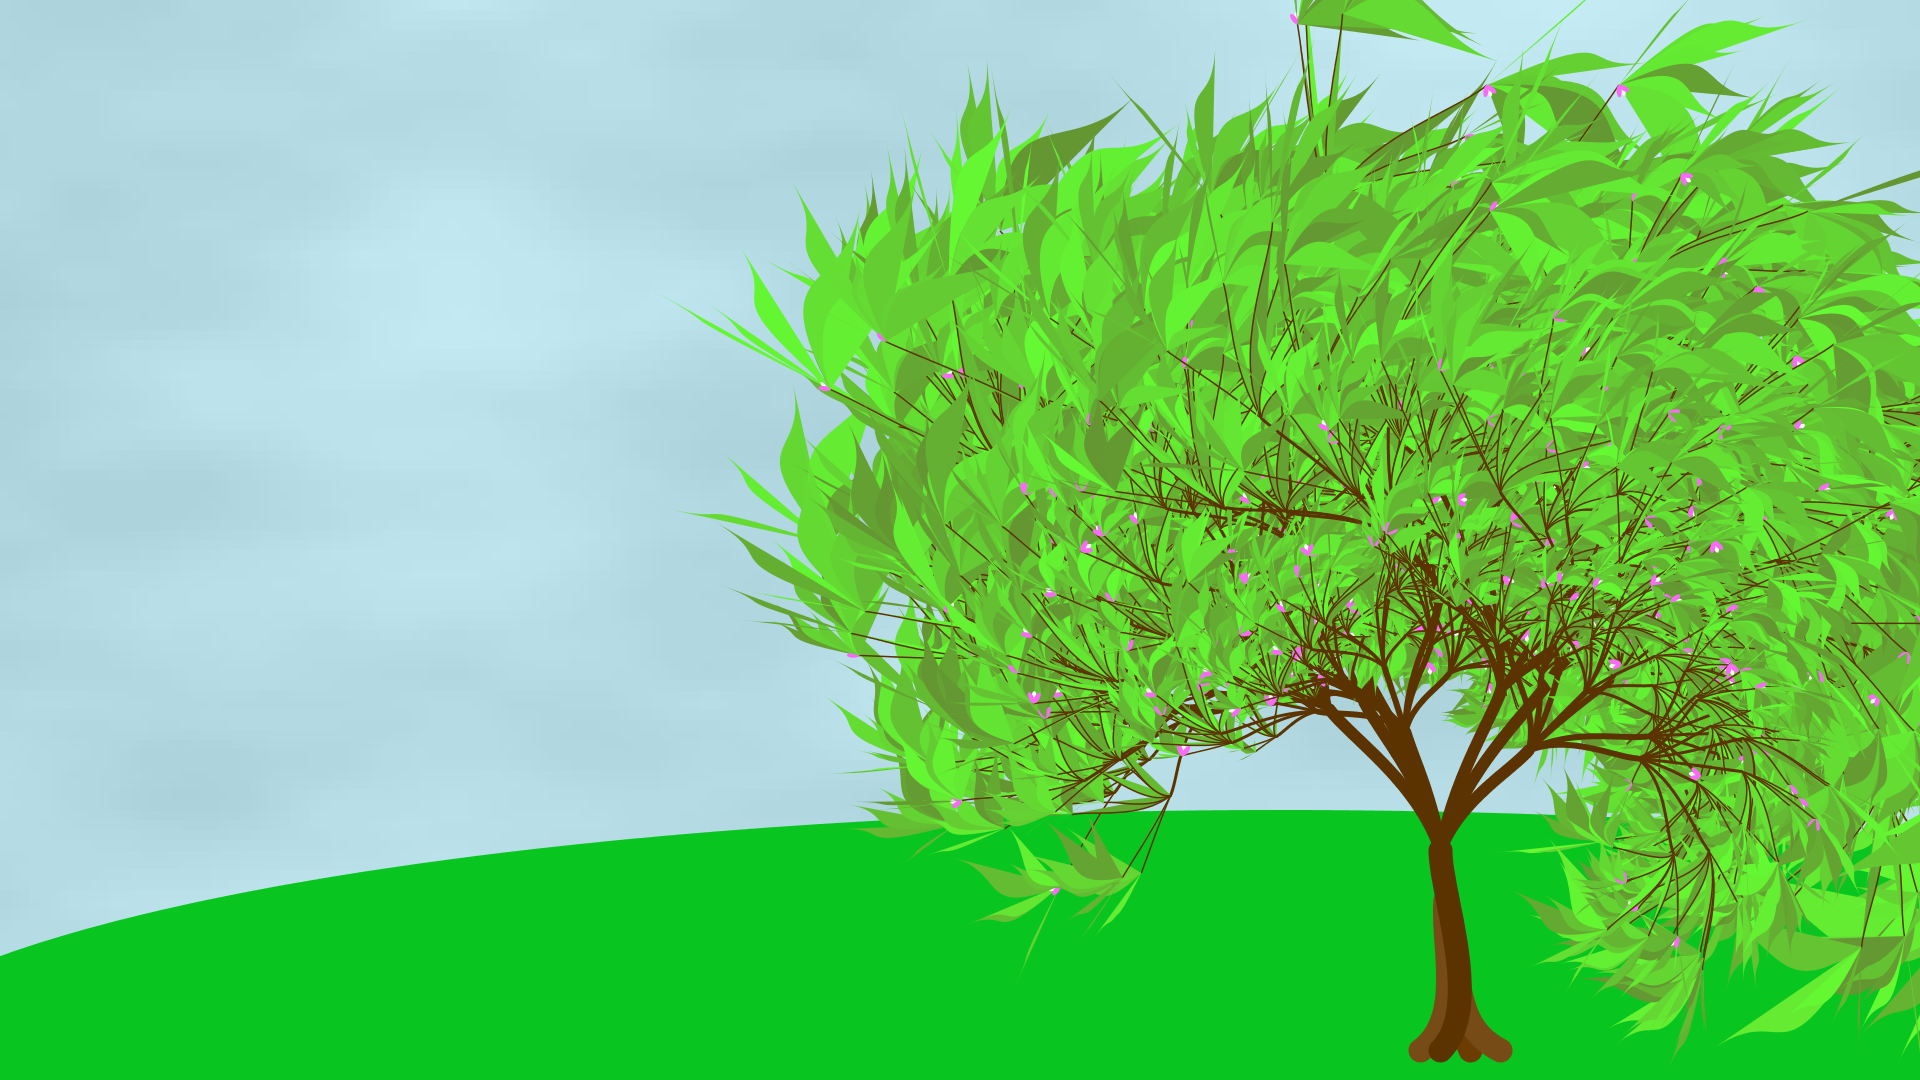 A recursively drawn tree on a hill.